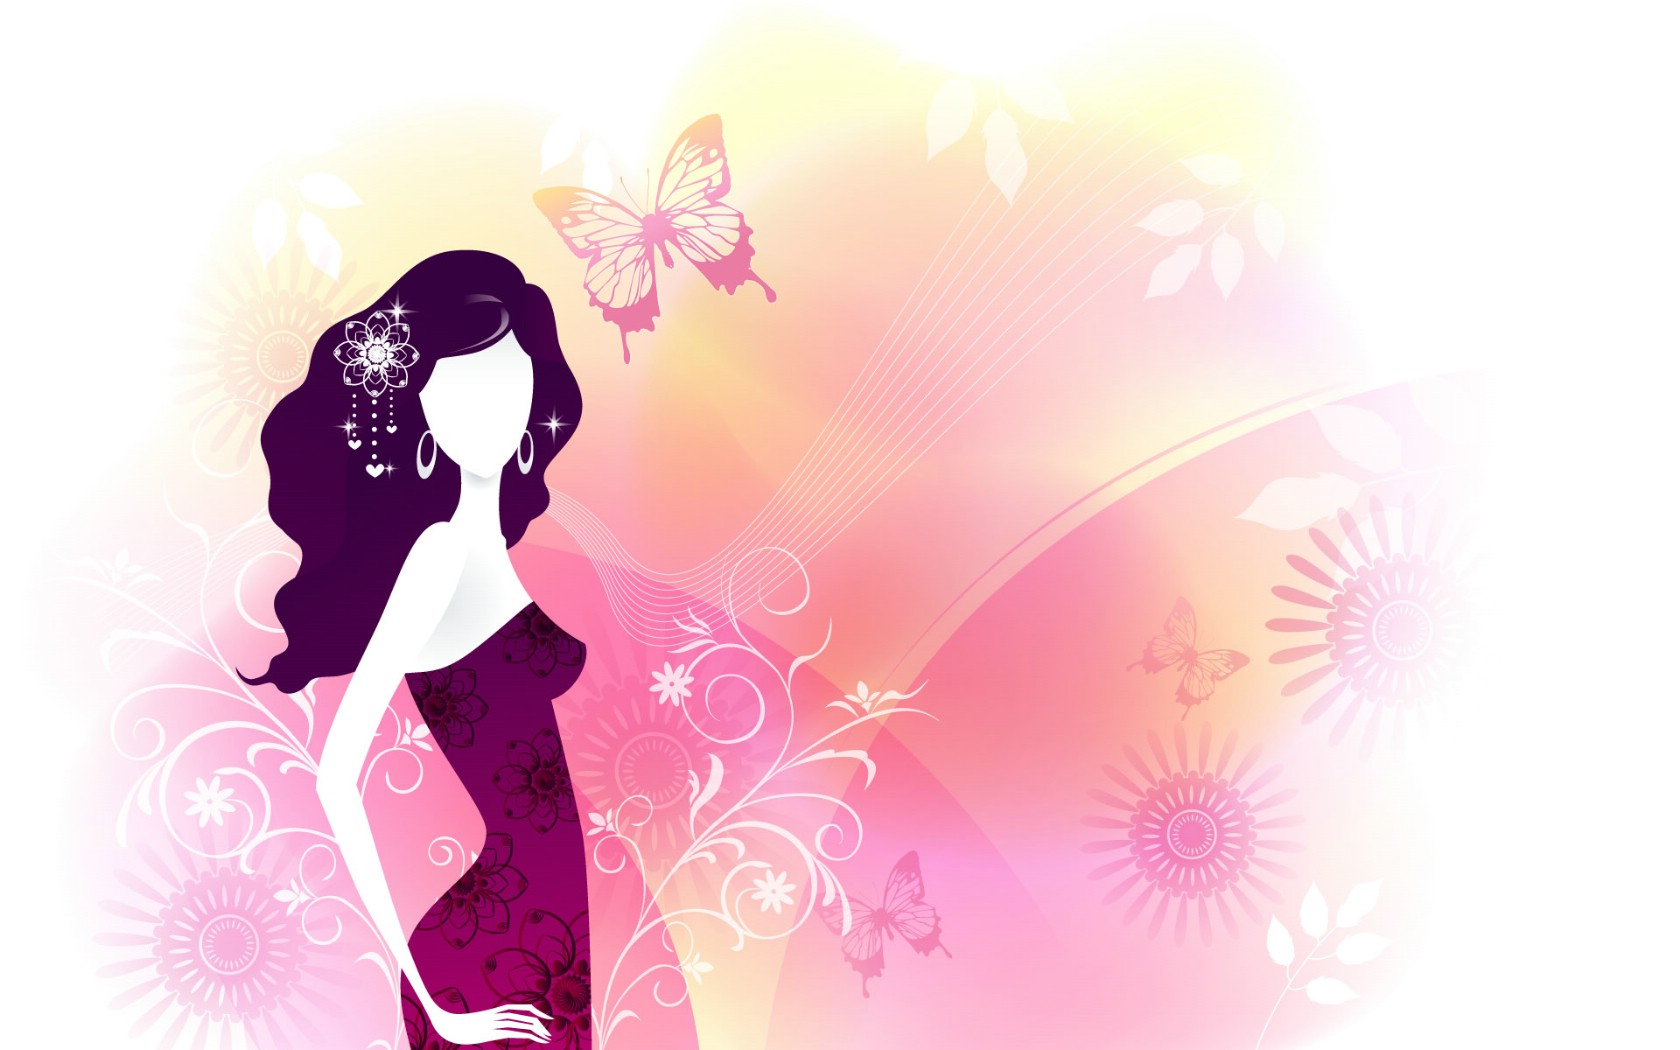 wallpaper girl vector reptile - photo #12